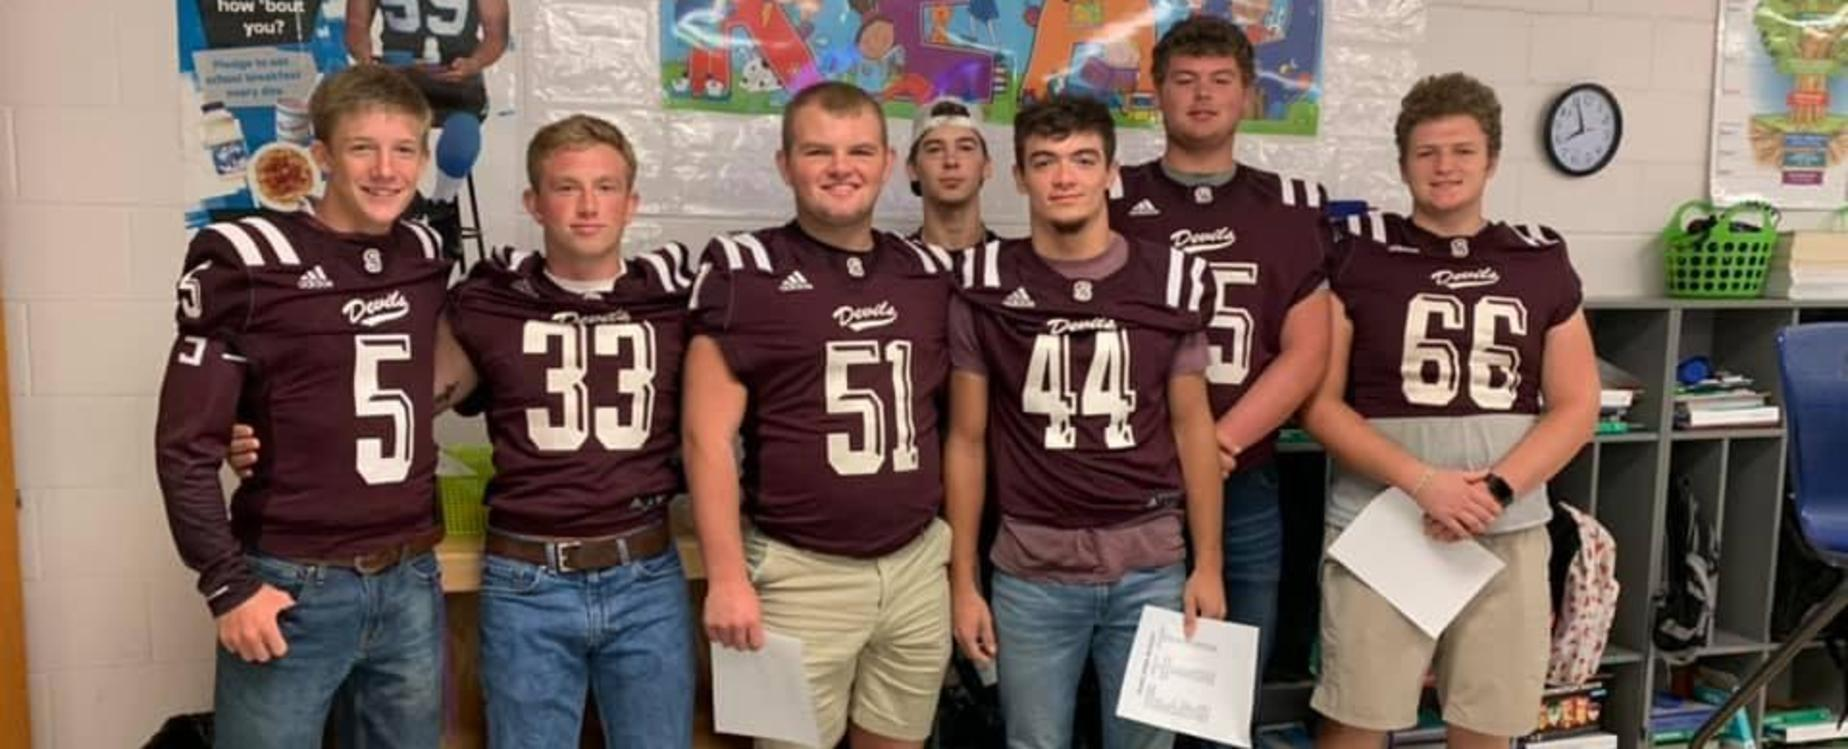 The Maroon Devil football players went to West to read to Elementary students!